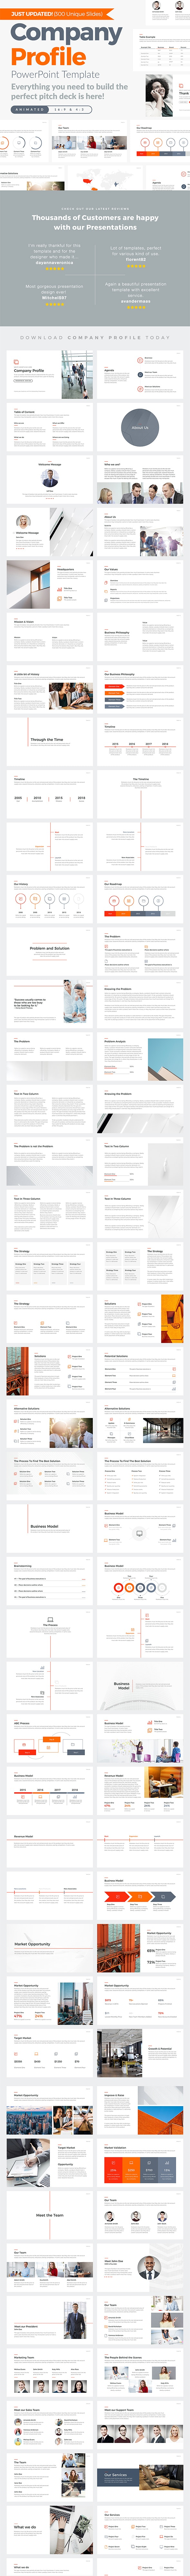 Company Profile PowerPoint Template - PowerPoint Templates Presentation Templates